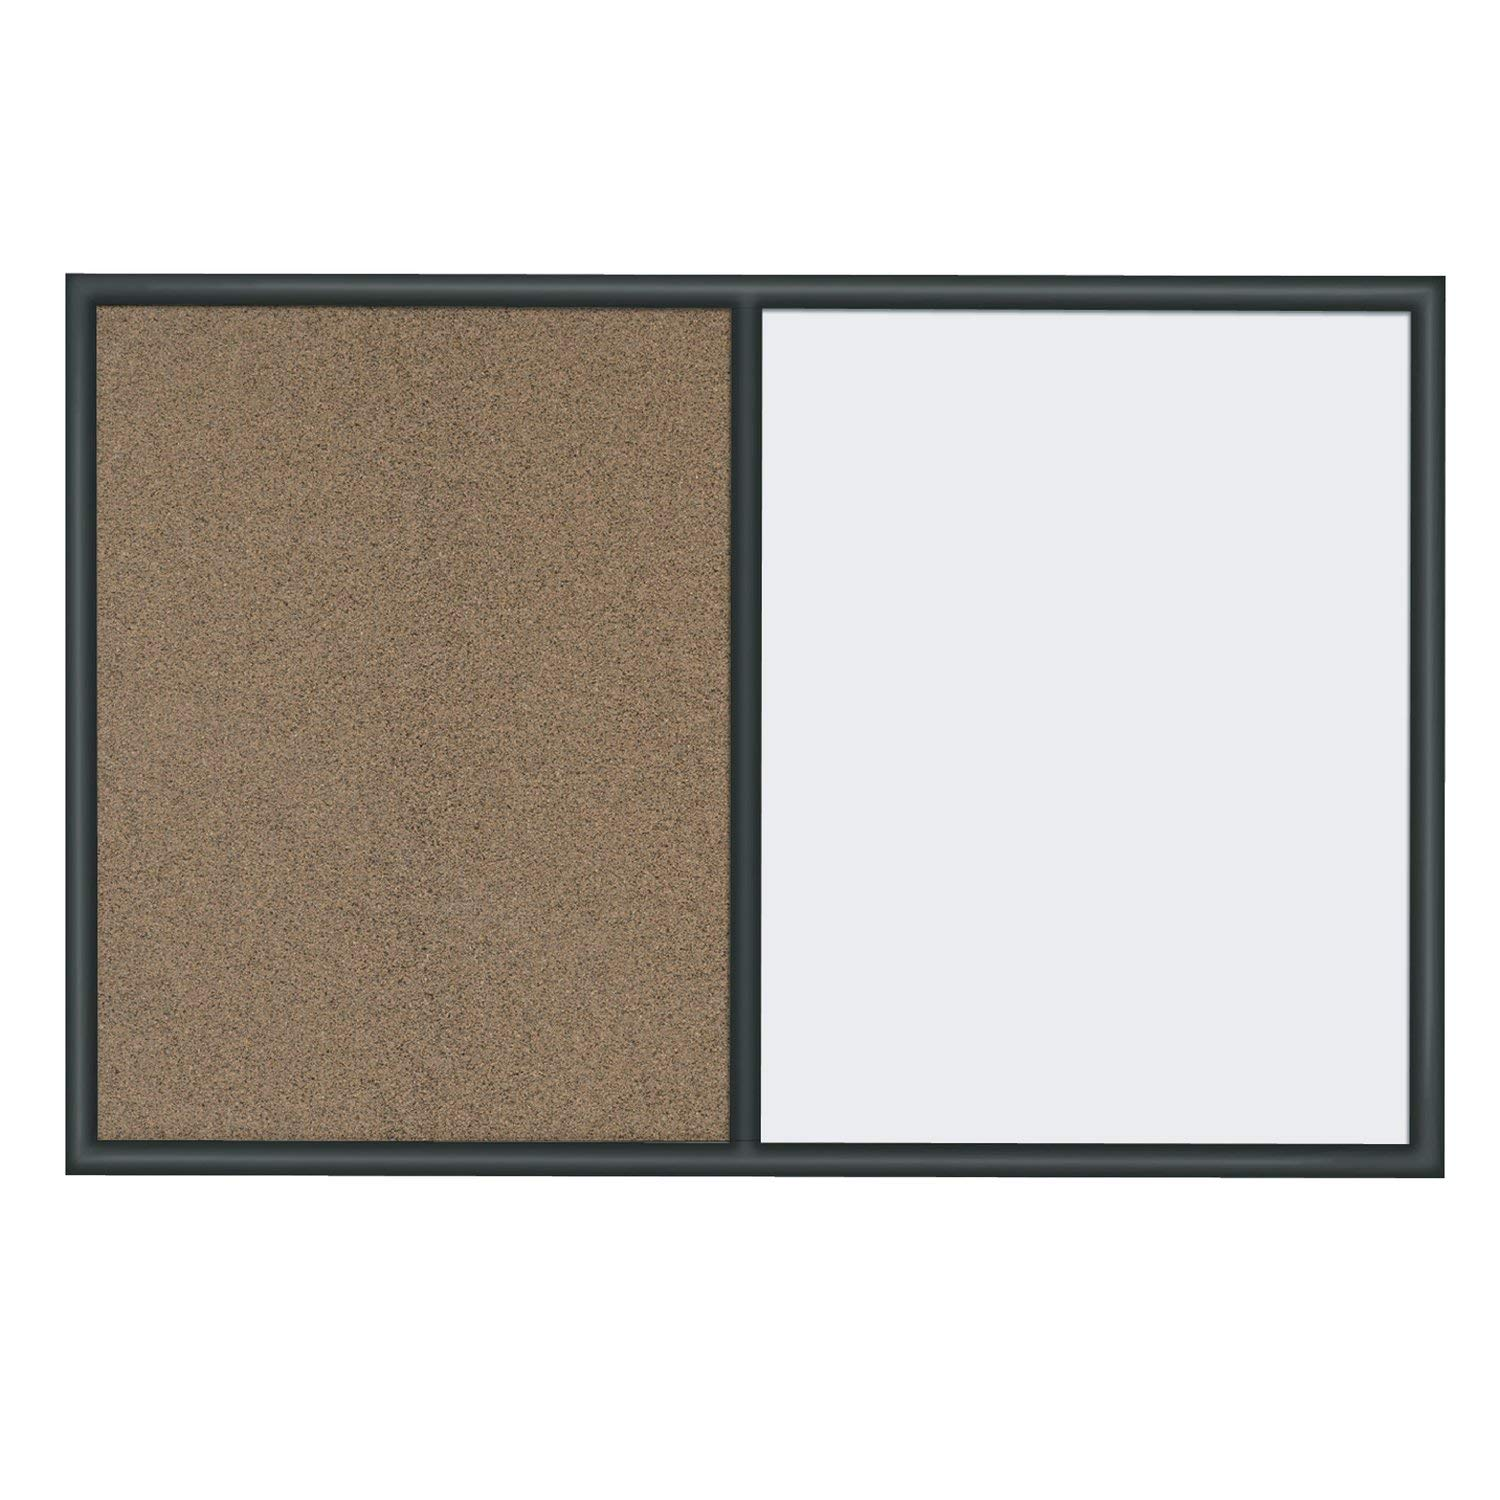 Quartet Whiteboard and Colored Cork Combination Board, 2 x 3 Feet, Black Frame (S563)